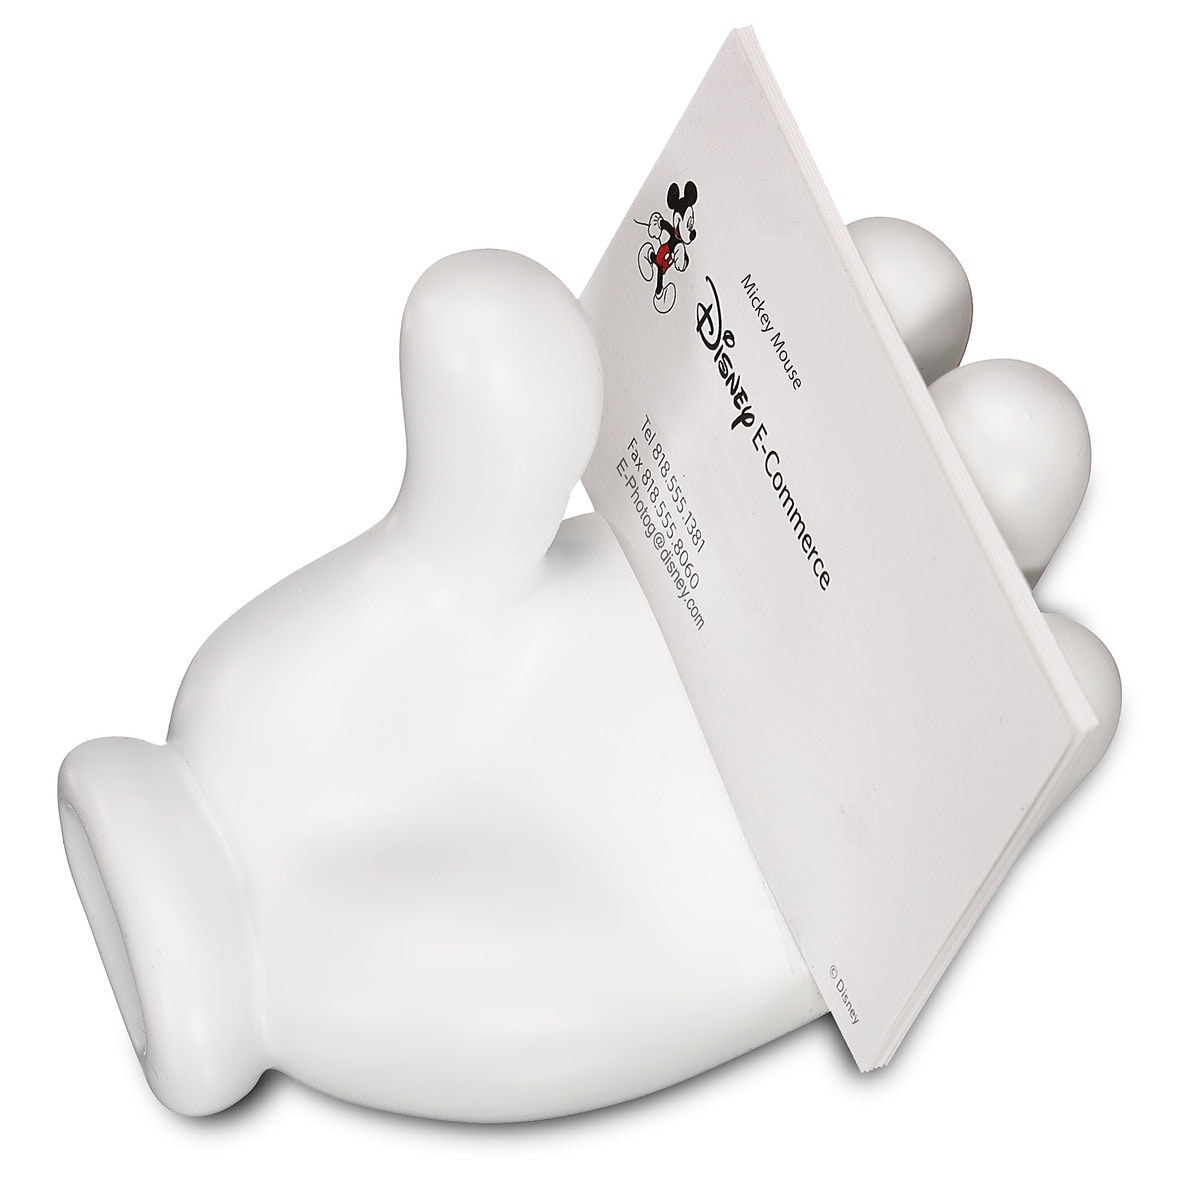 Best of mickey mouse business card holder shopdisney thumbnail image of best of mickey mouse business card holder 1 colourmoves